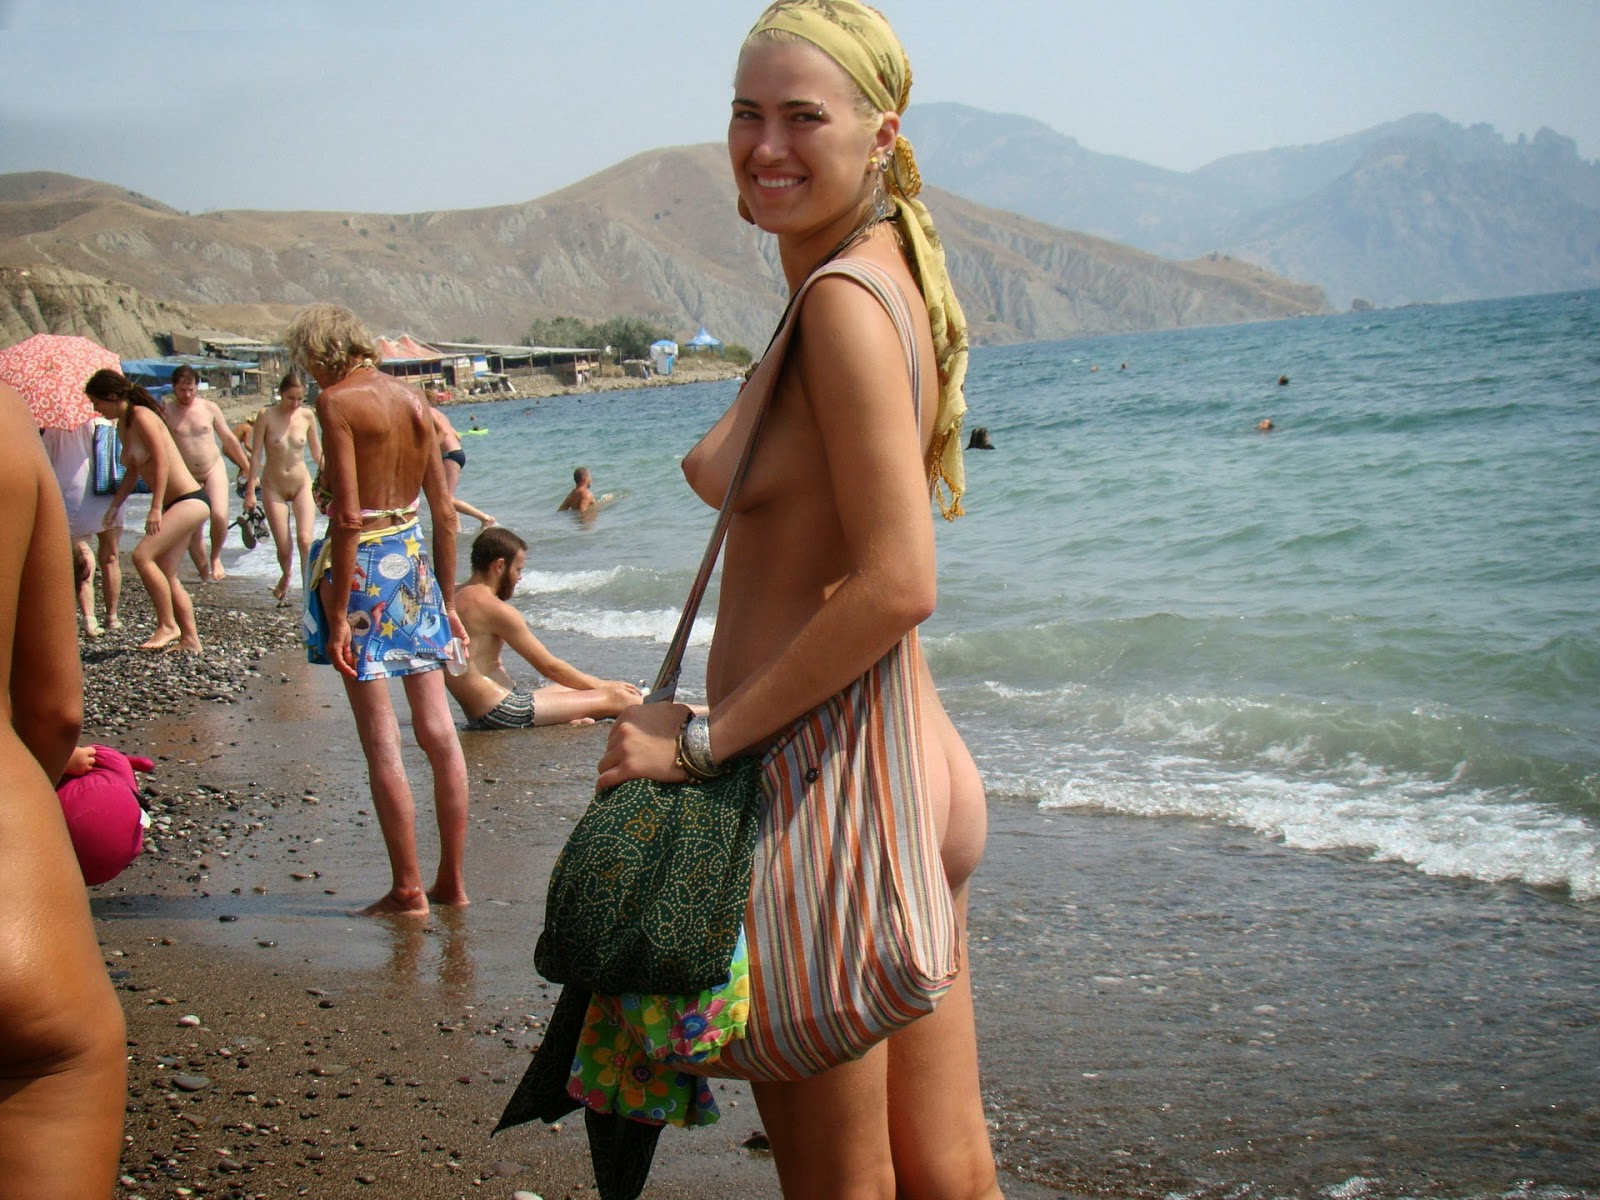 Kiev nude beach review 1